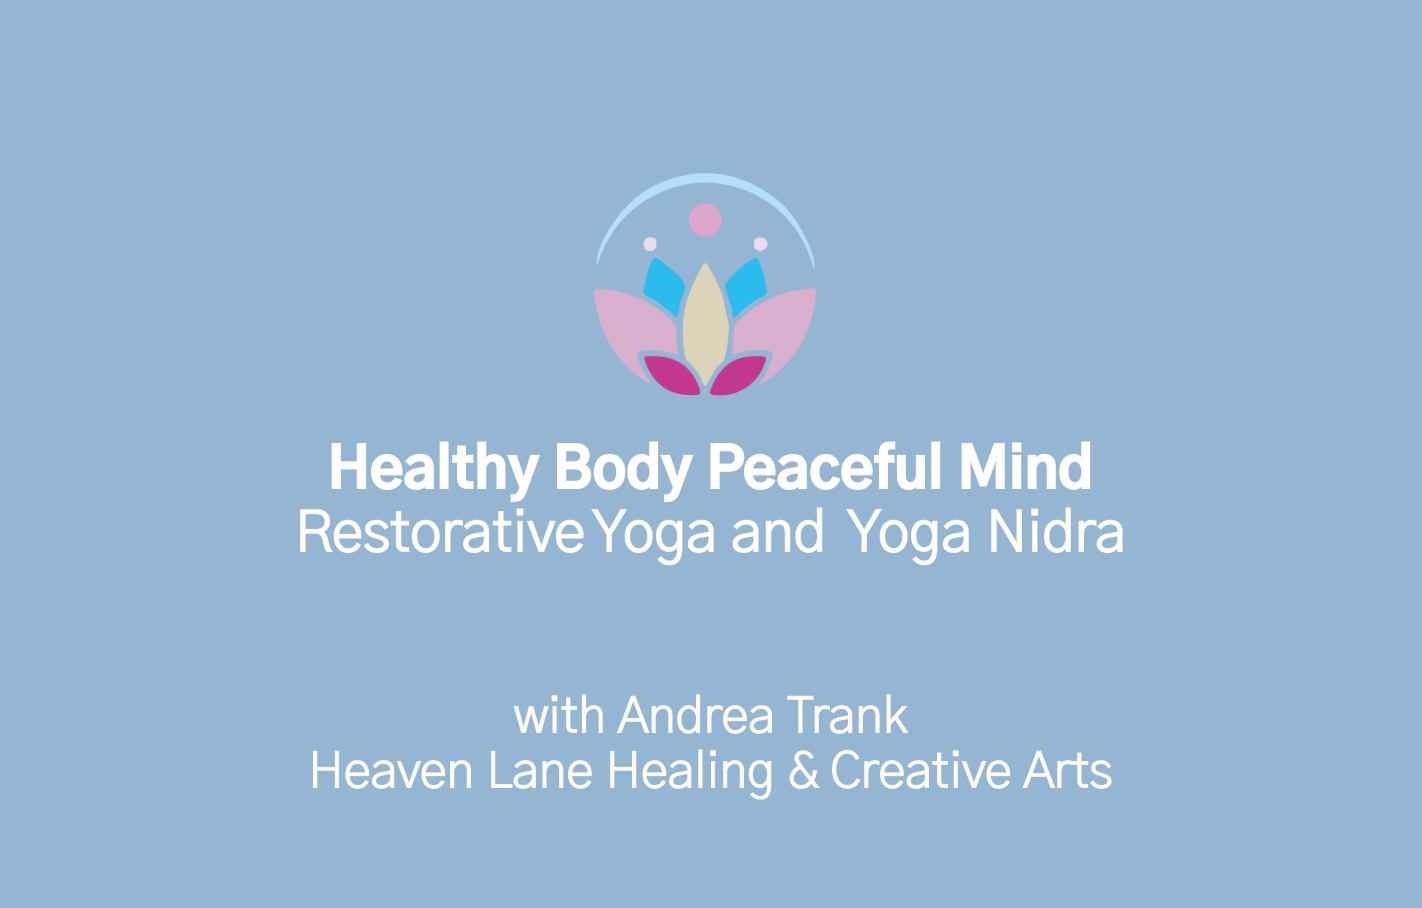 8. Restorative Yoga and Yoga Nidra